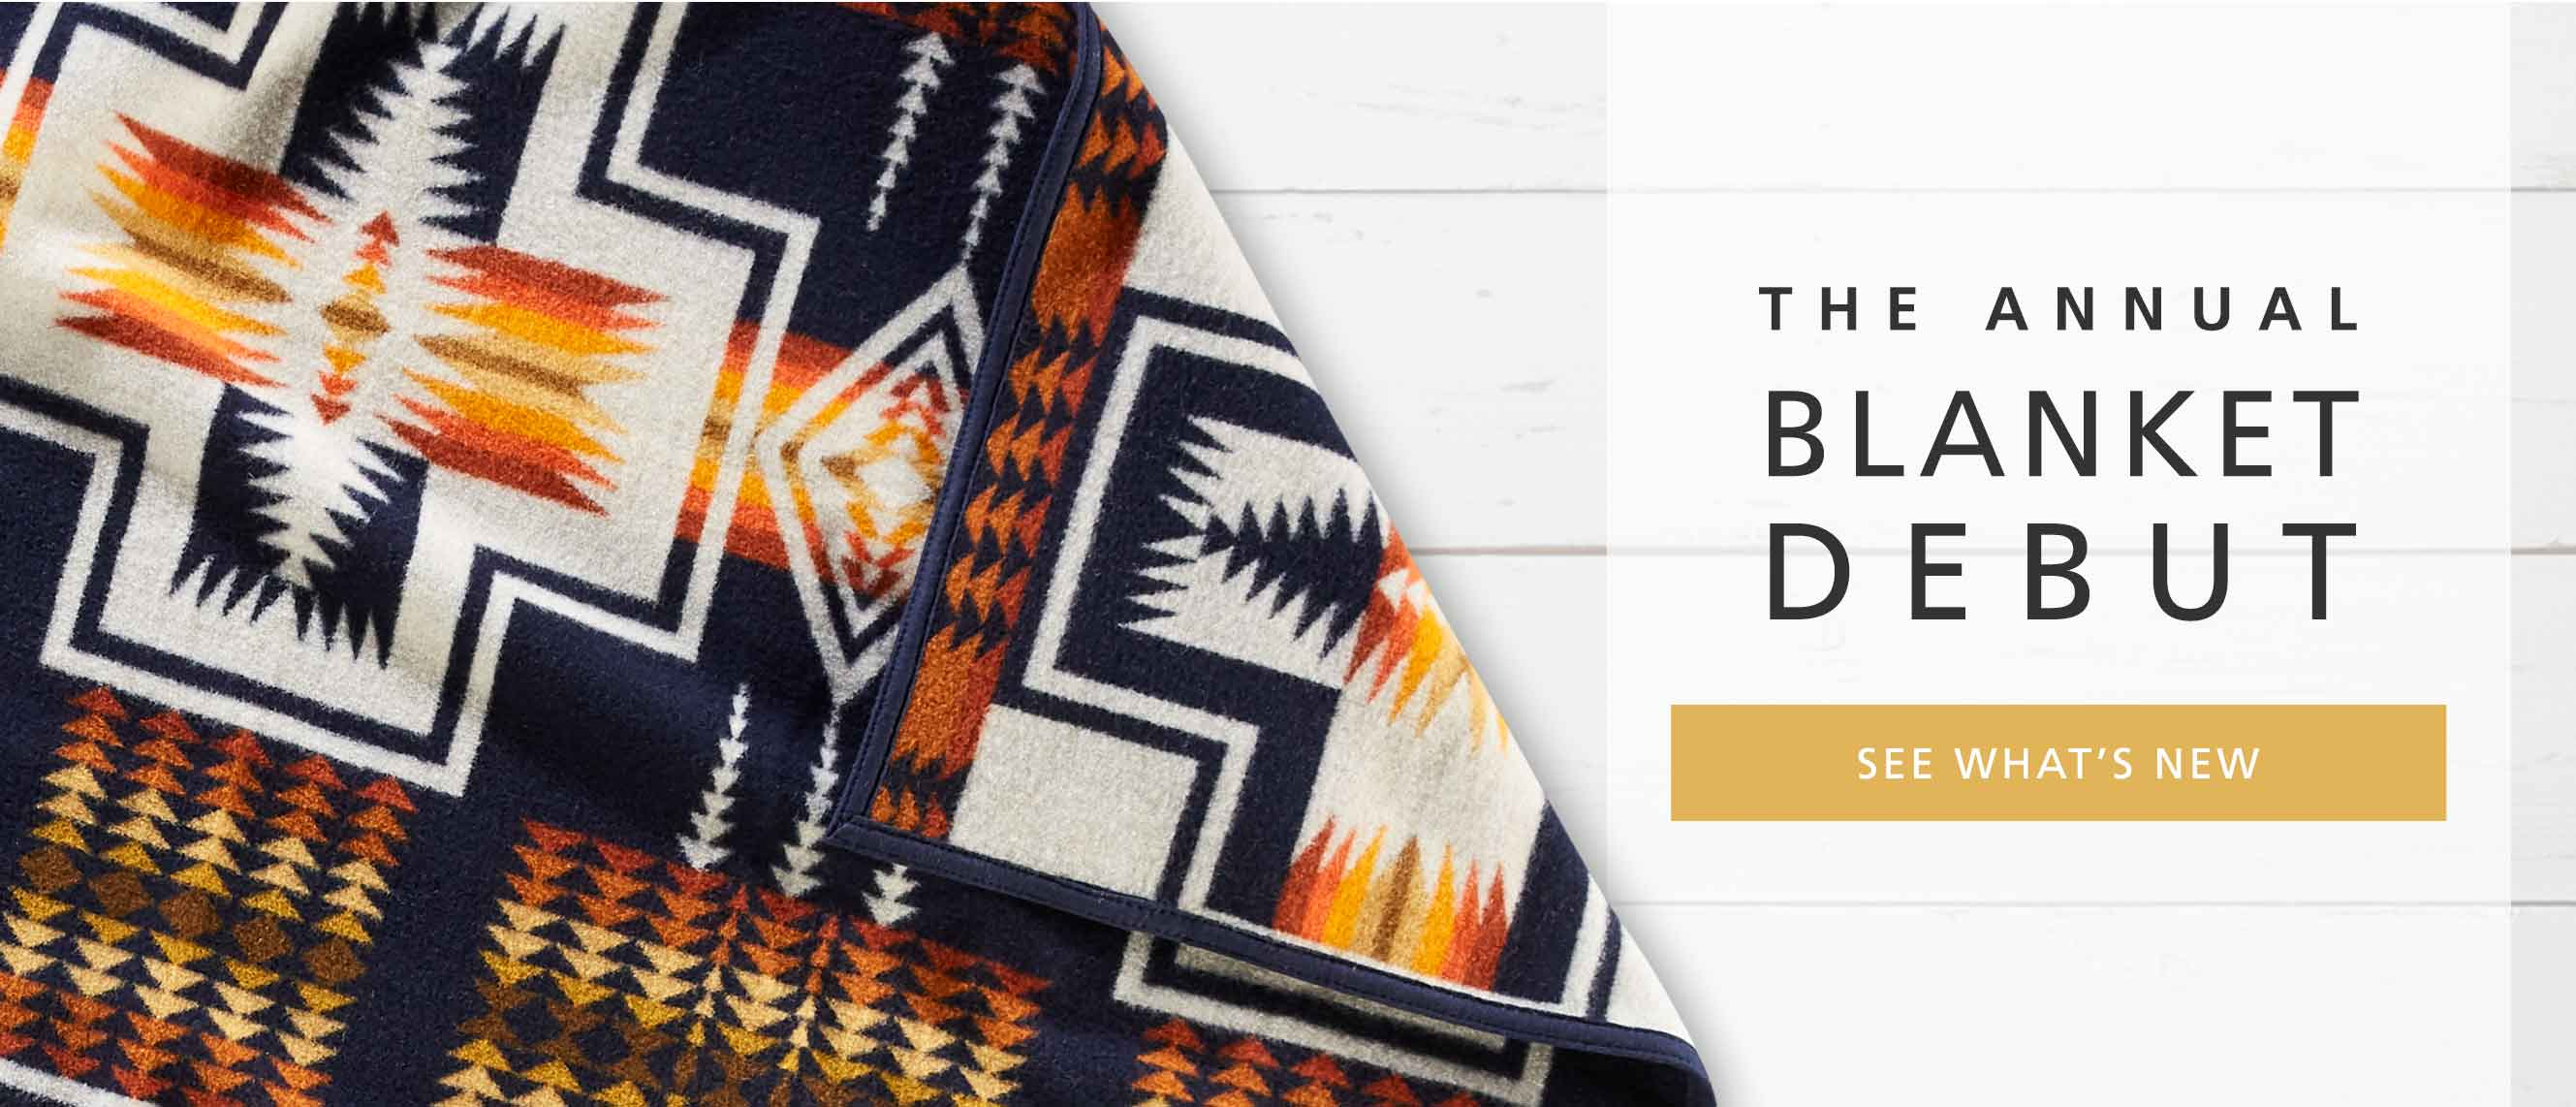 The Annual Blanket Debut - SEE WHAT'S NEW